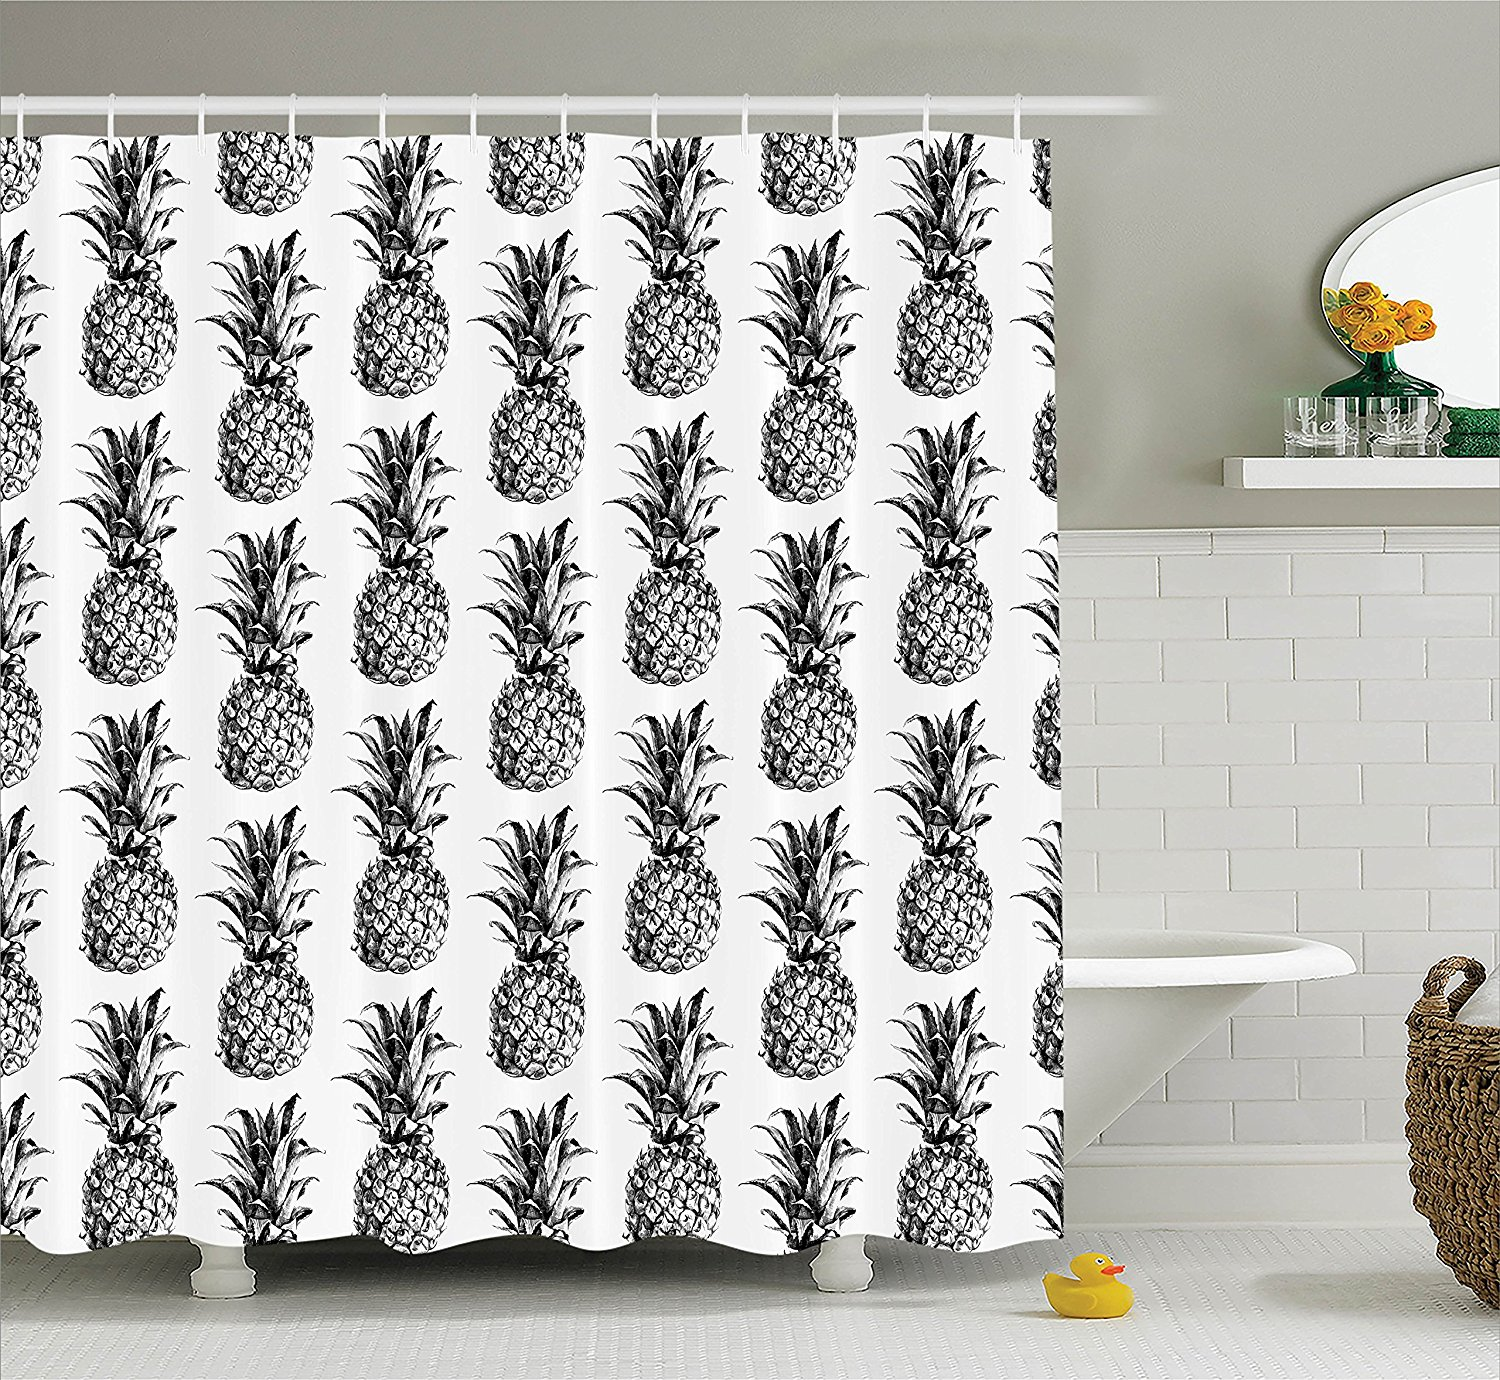 Buy pineapple bathroom accessories and get free shipping on ...